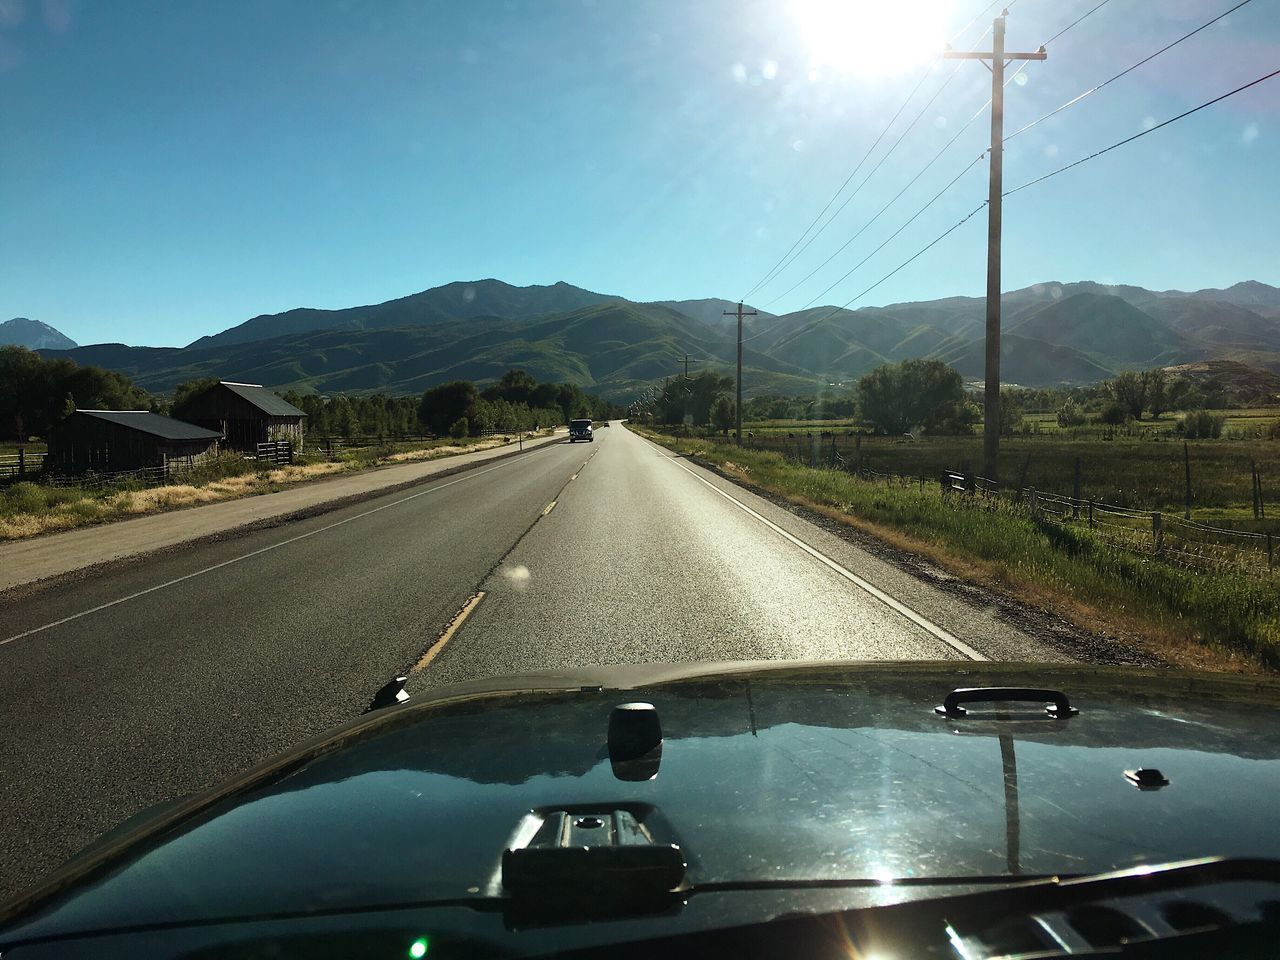 heading one town over for dinner. Midway, Utah